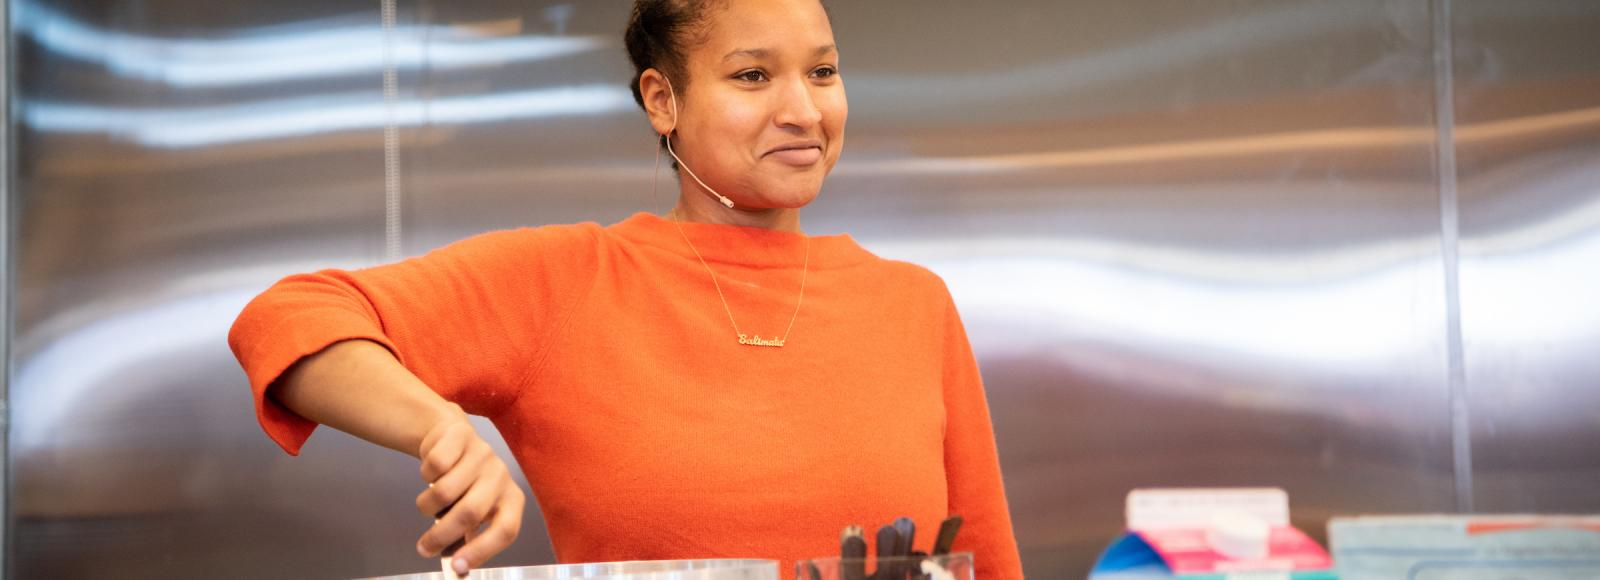 A woman wearing an orange shirt stirs a large silver pot while looking up and smiling.